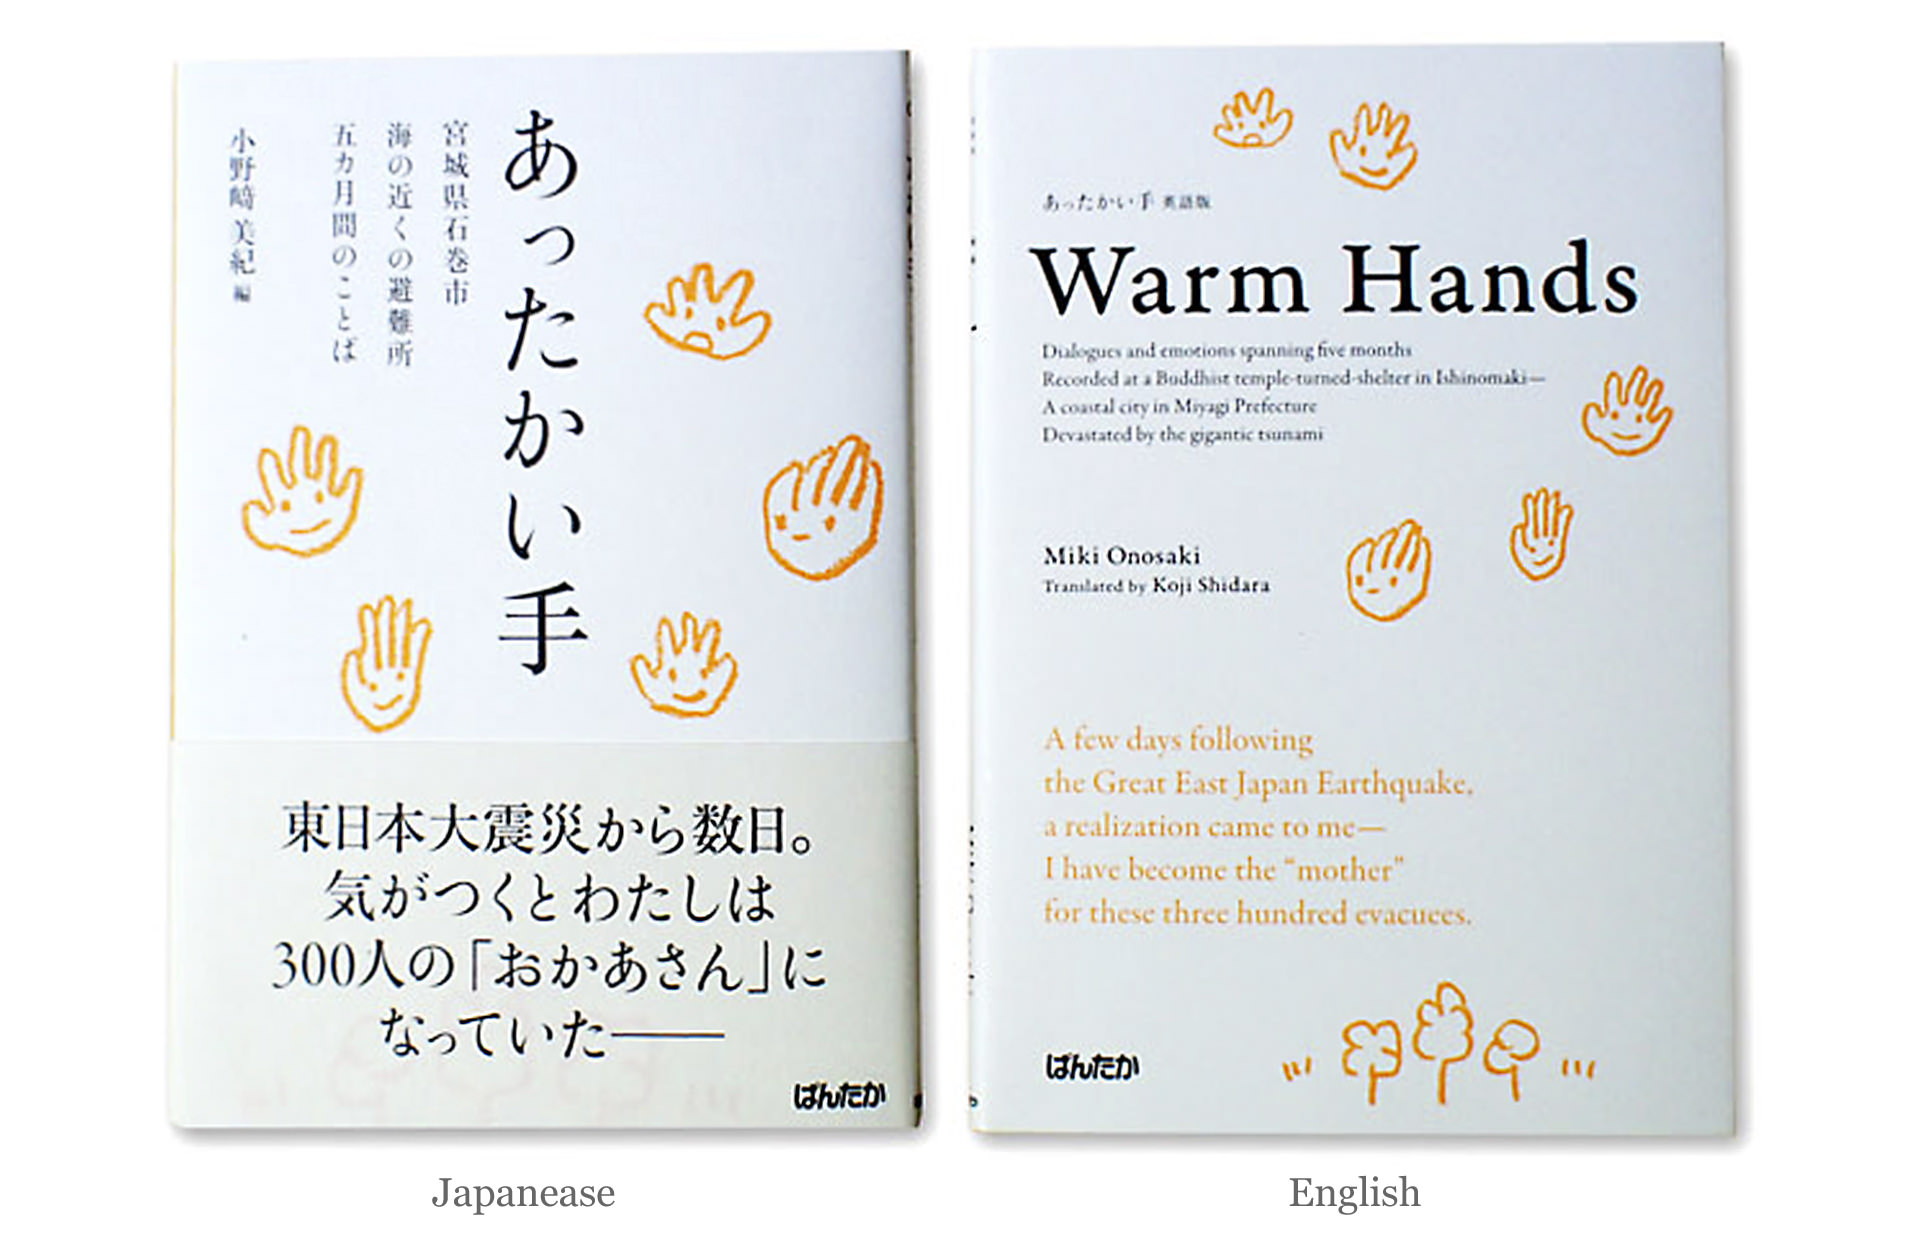 Warm Hands — a Book of Poems By Miki Onosaki